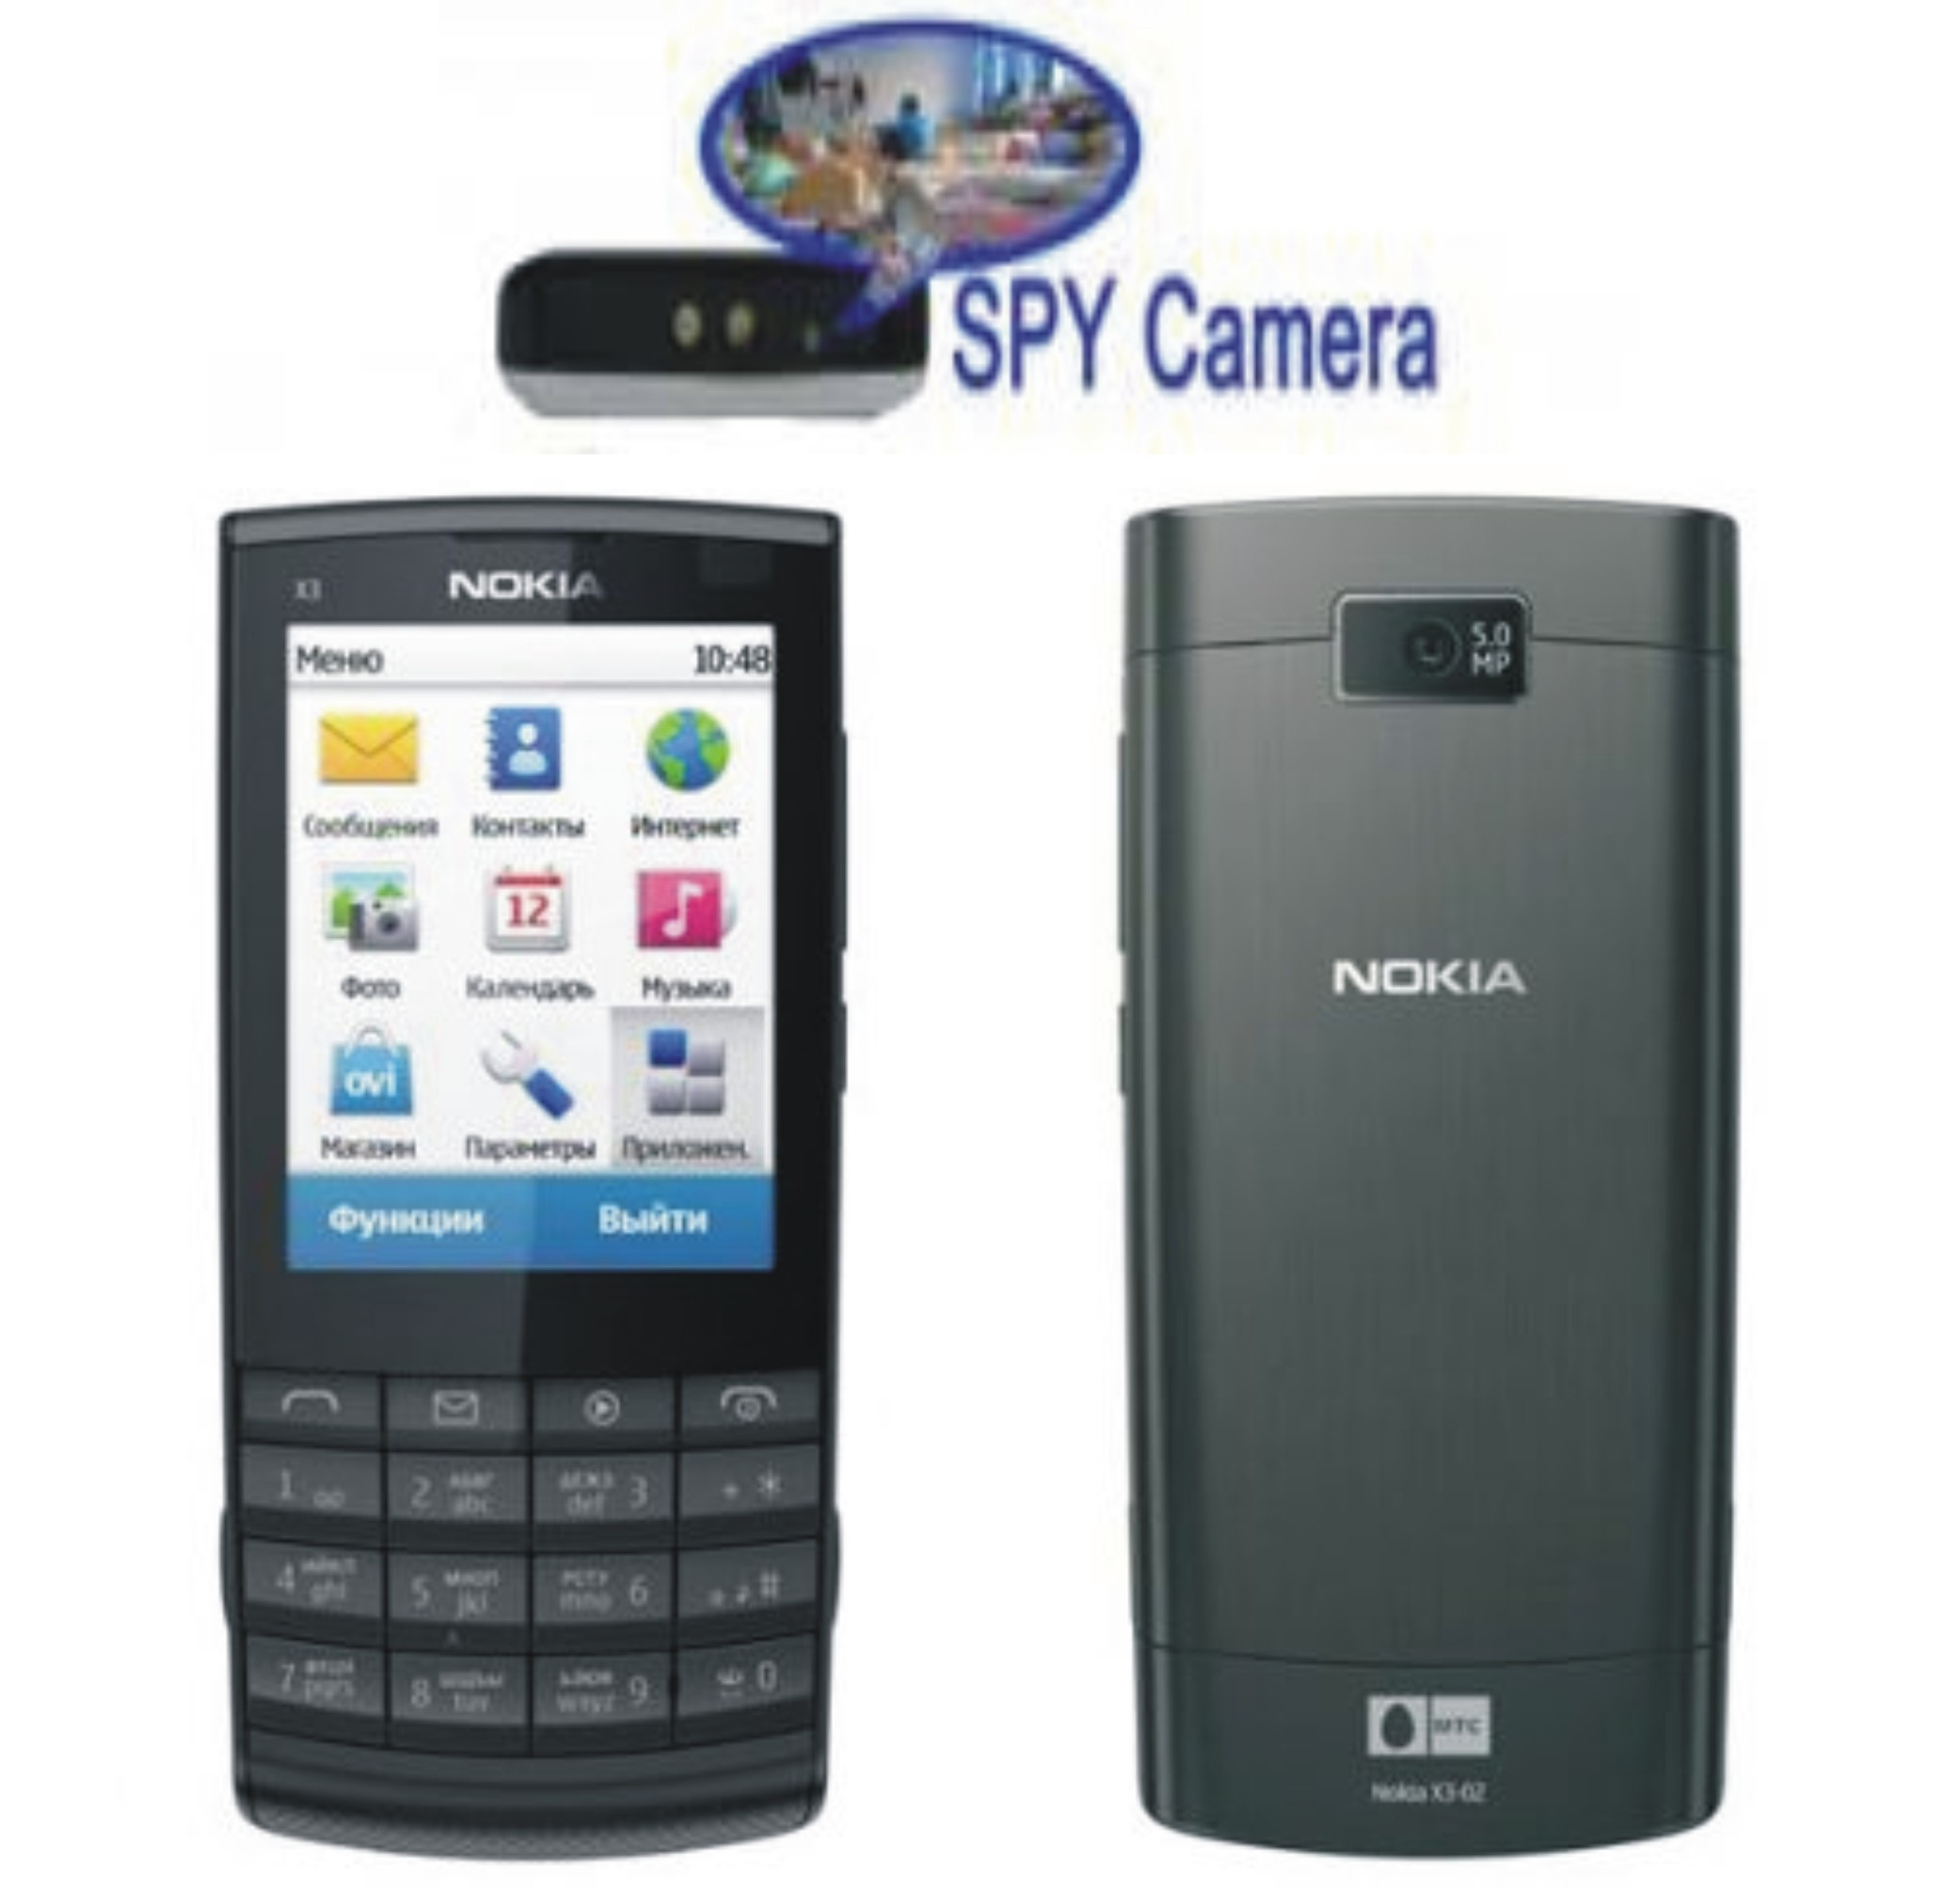 Spy Camera In Nokia Phone Touch Screen In Samastipur